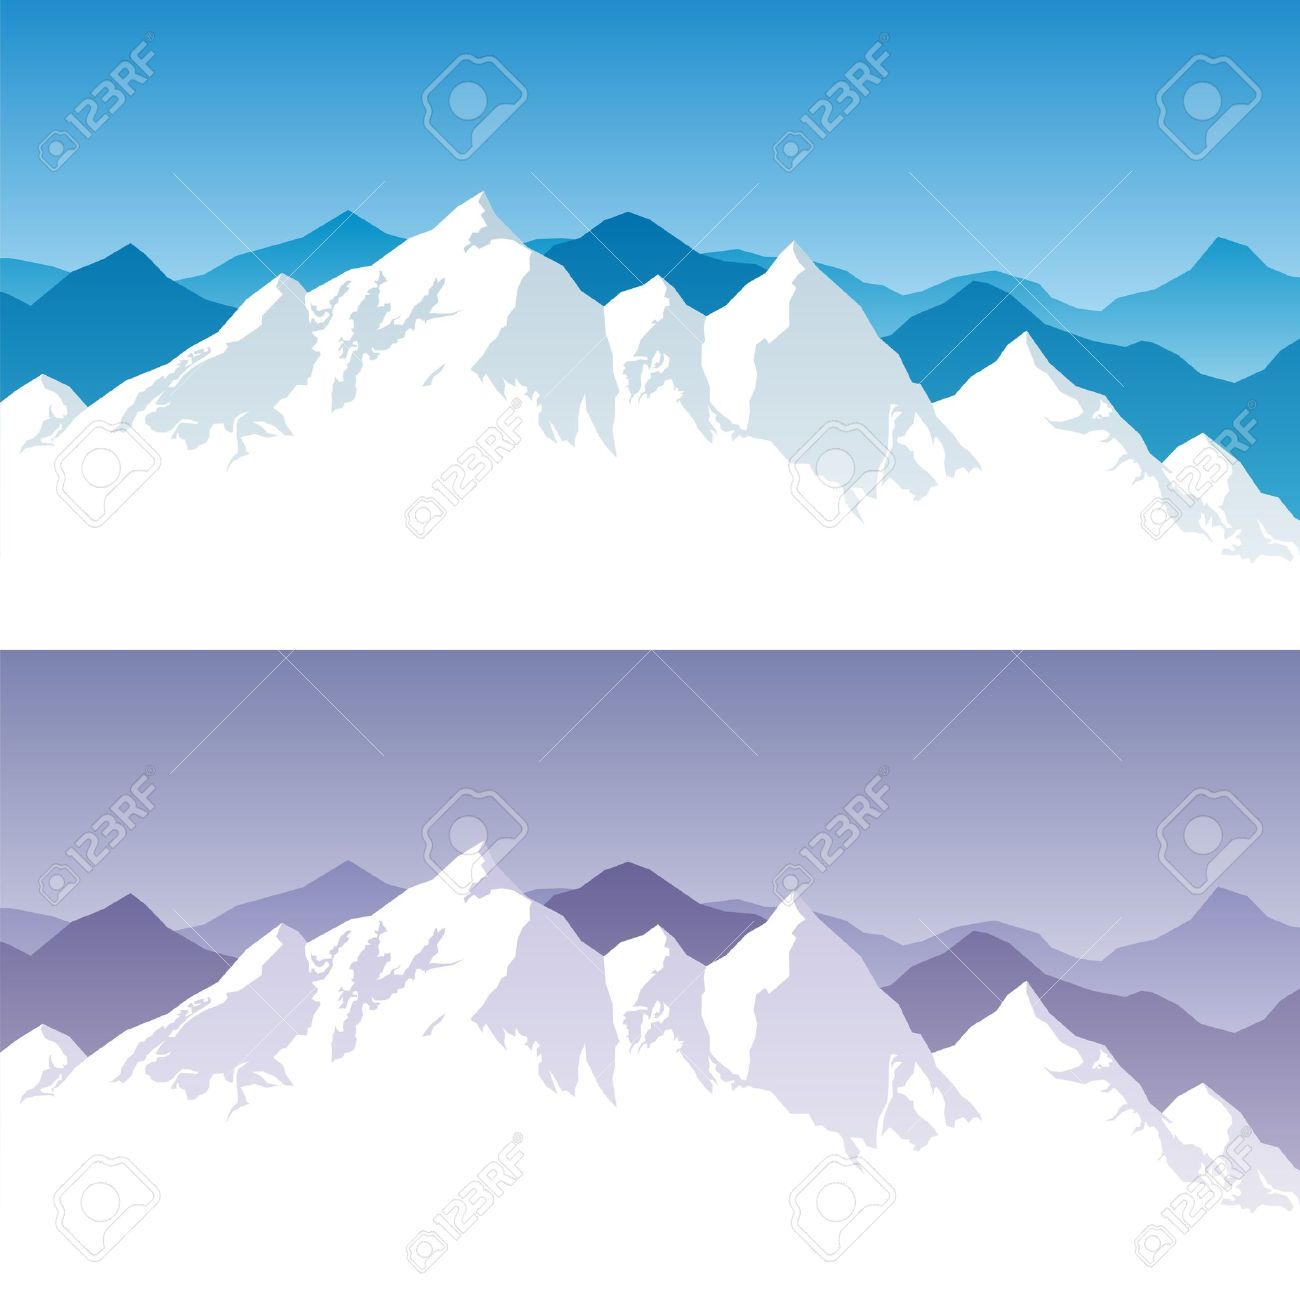 Background with snowy mountain range in 2 color versions royalty background with snowy mountain range in 2 color versions stock vector 9816807 sciox Gallery